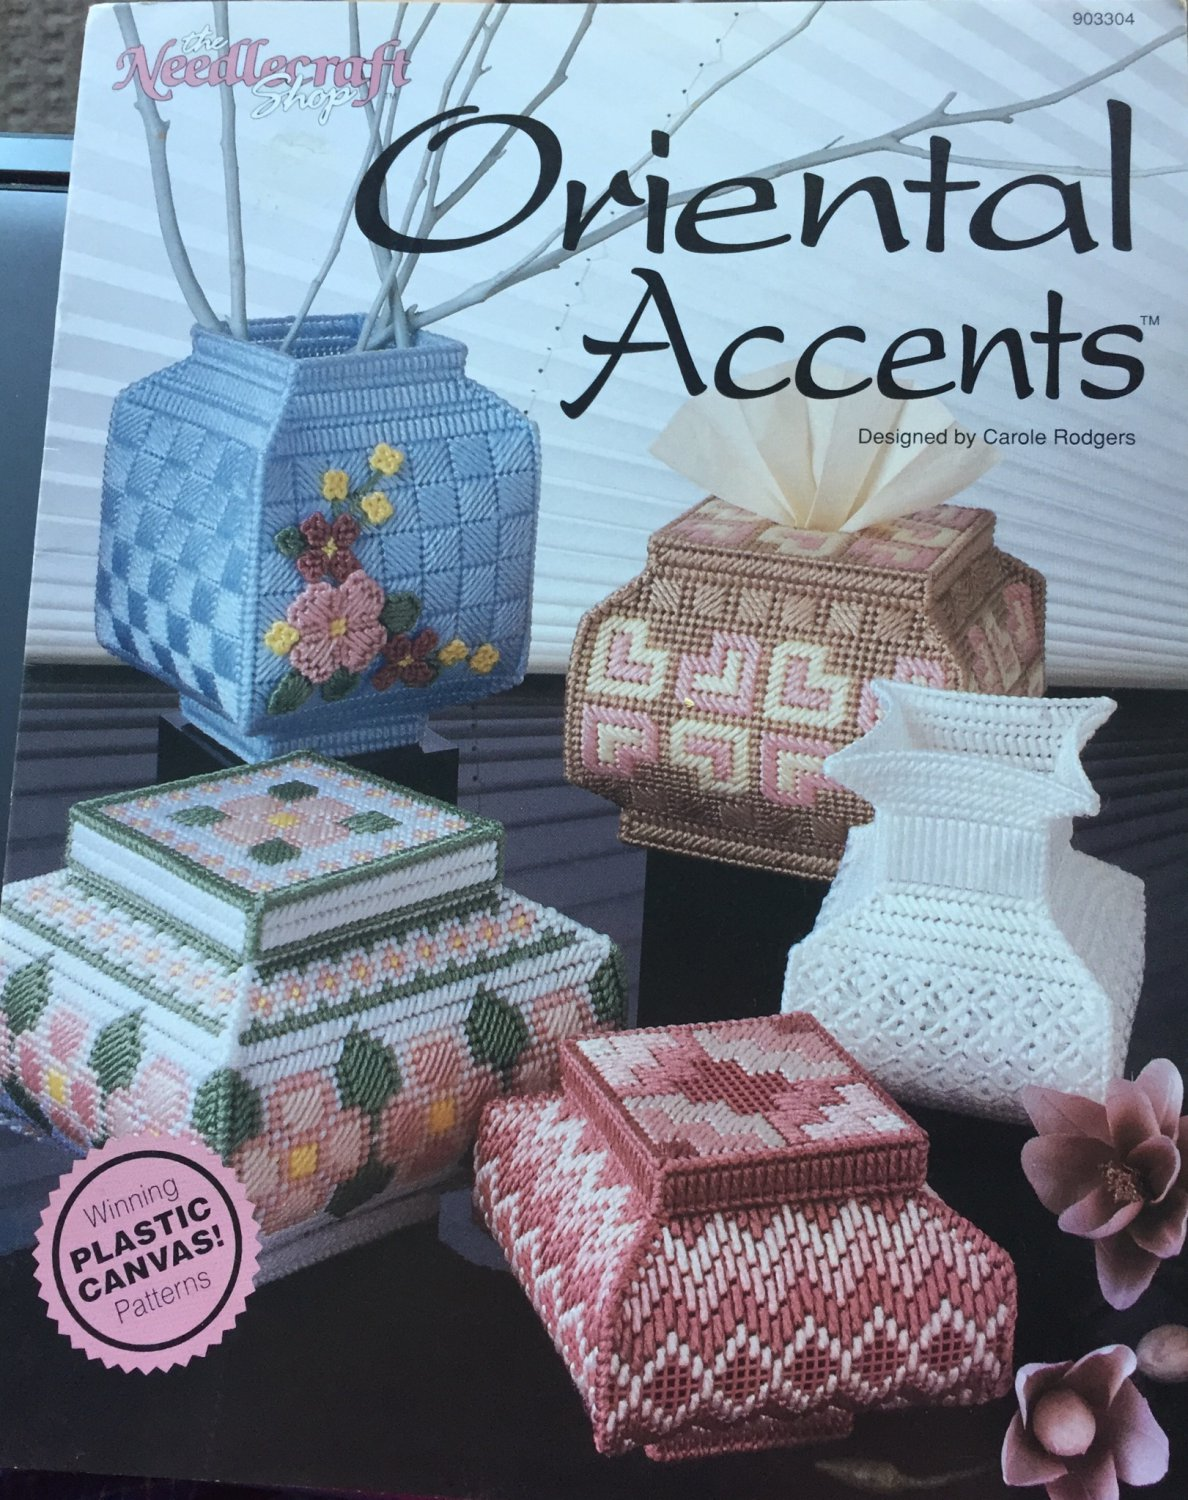 Tissue Cover Boxes Plastic Canvas Pattern Oriental Accents The Needlecraft Shop 903304